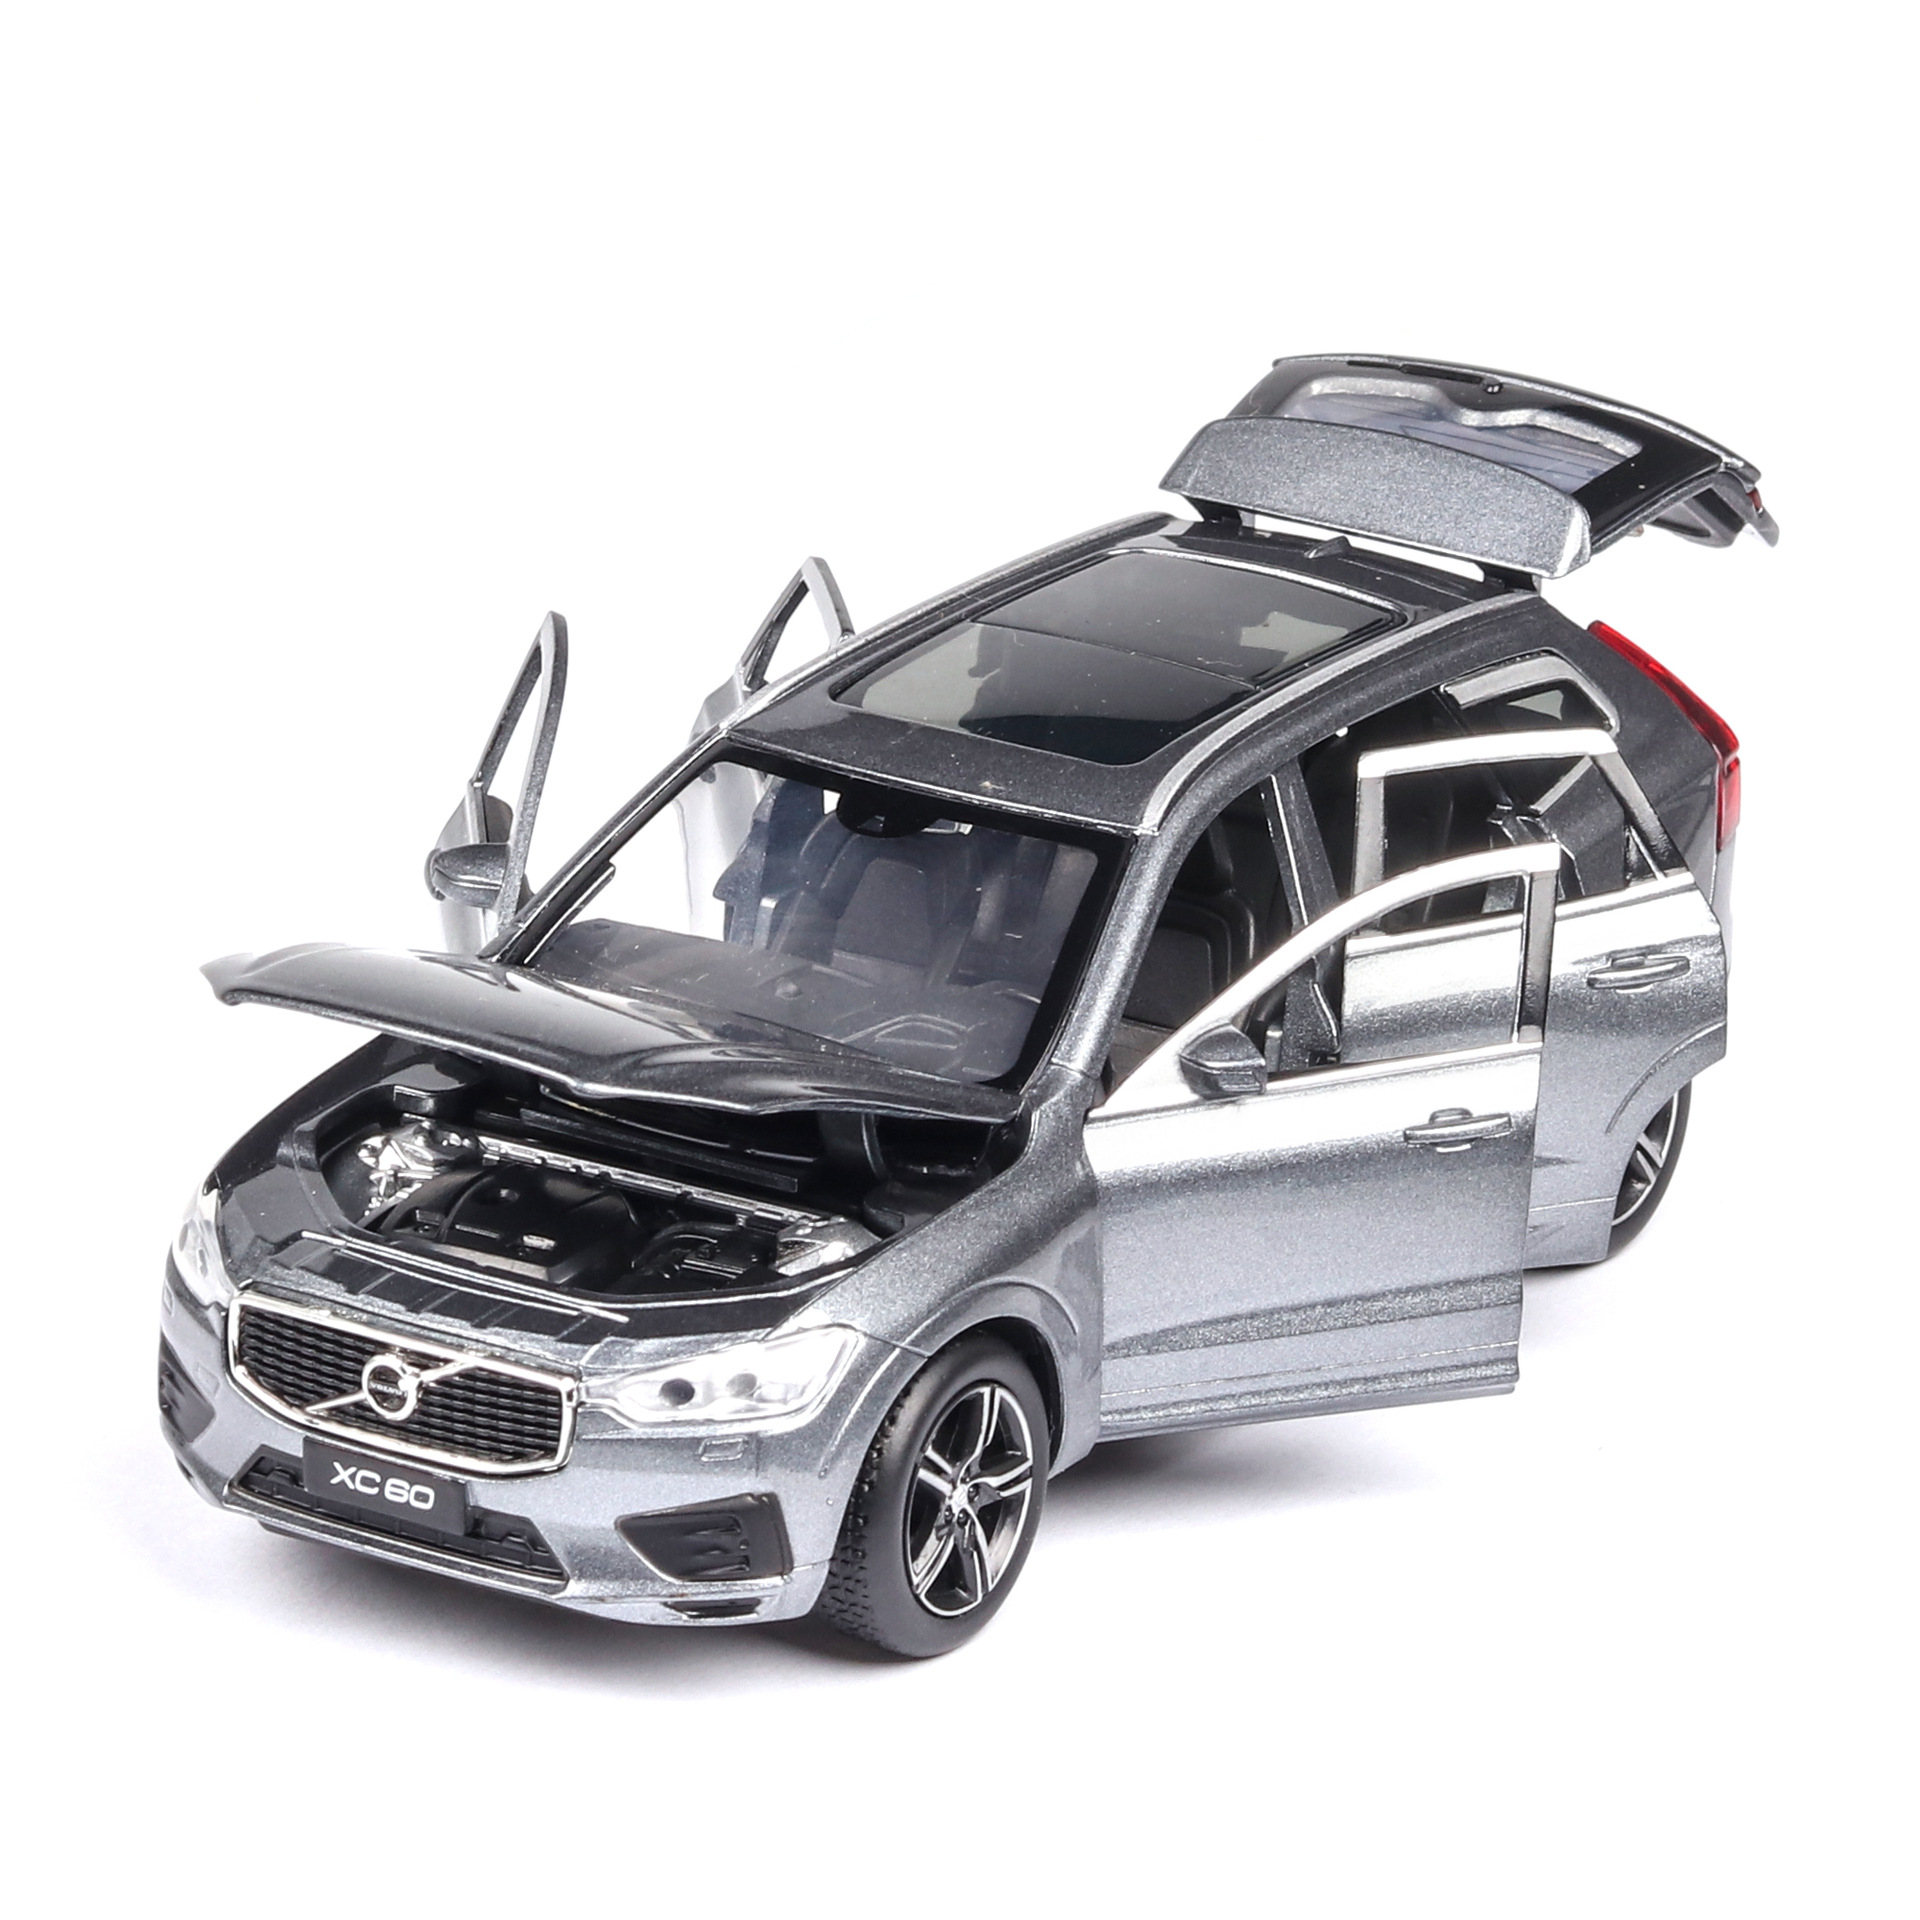 High Simulation 1:32 Alloy Pull Back Toy XC60 Model,off-road 6 Open Door,simulation Sound And Light,hot Collection Model